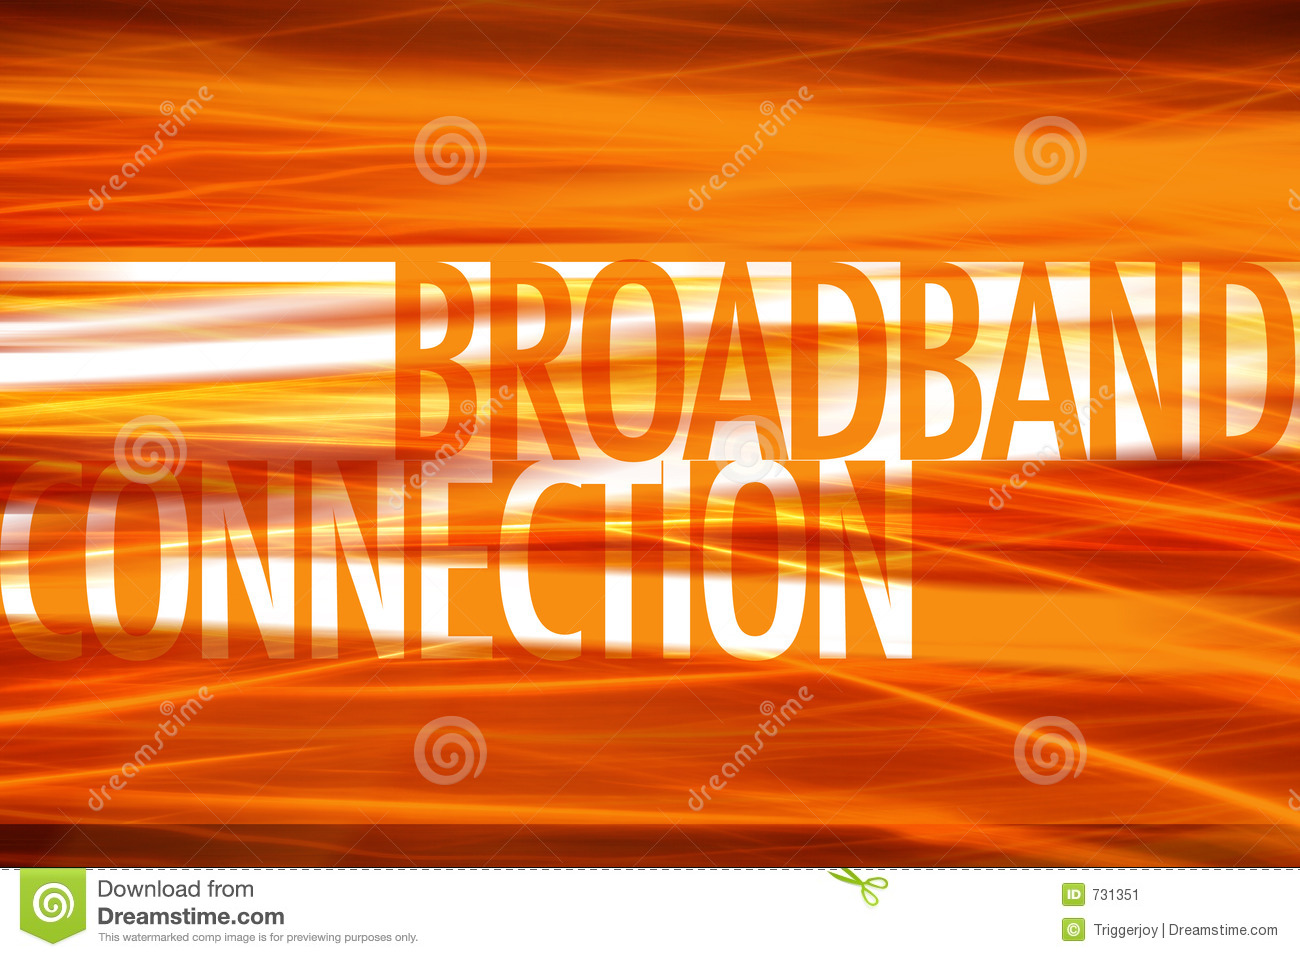 Broadband Connection- Technology background